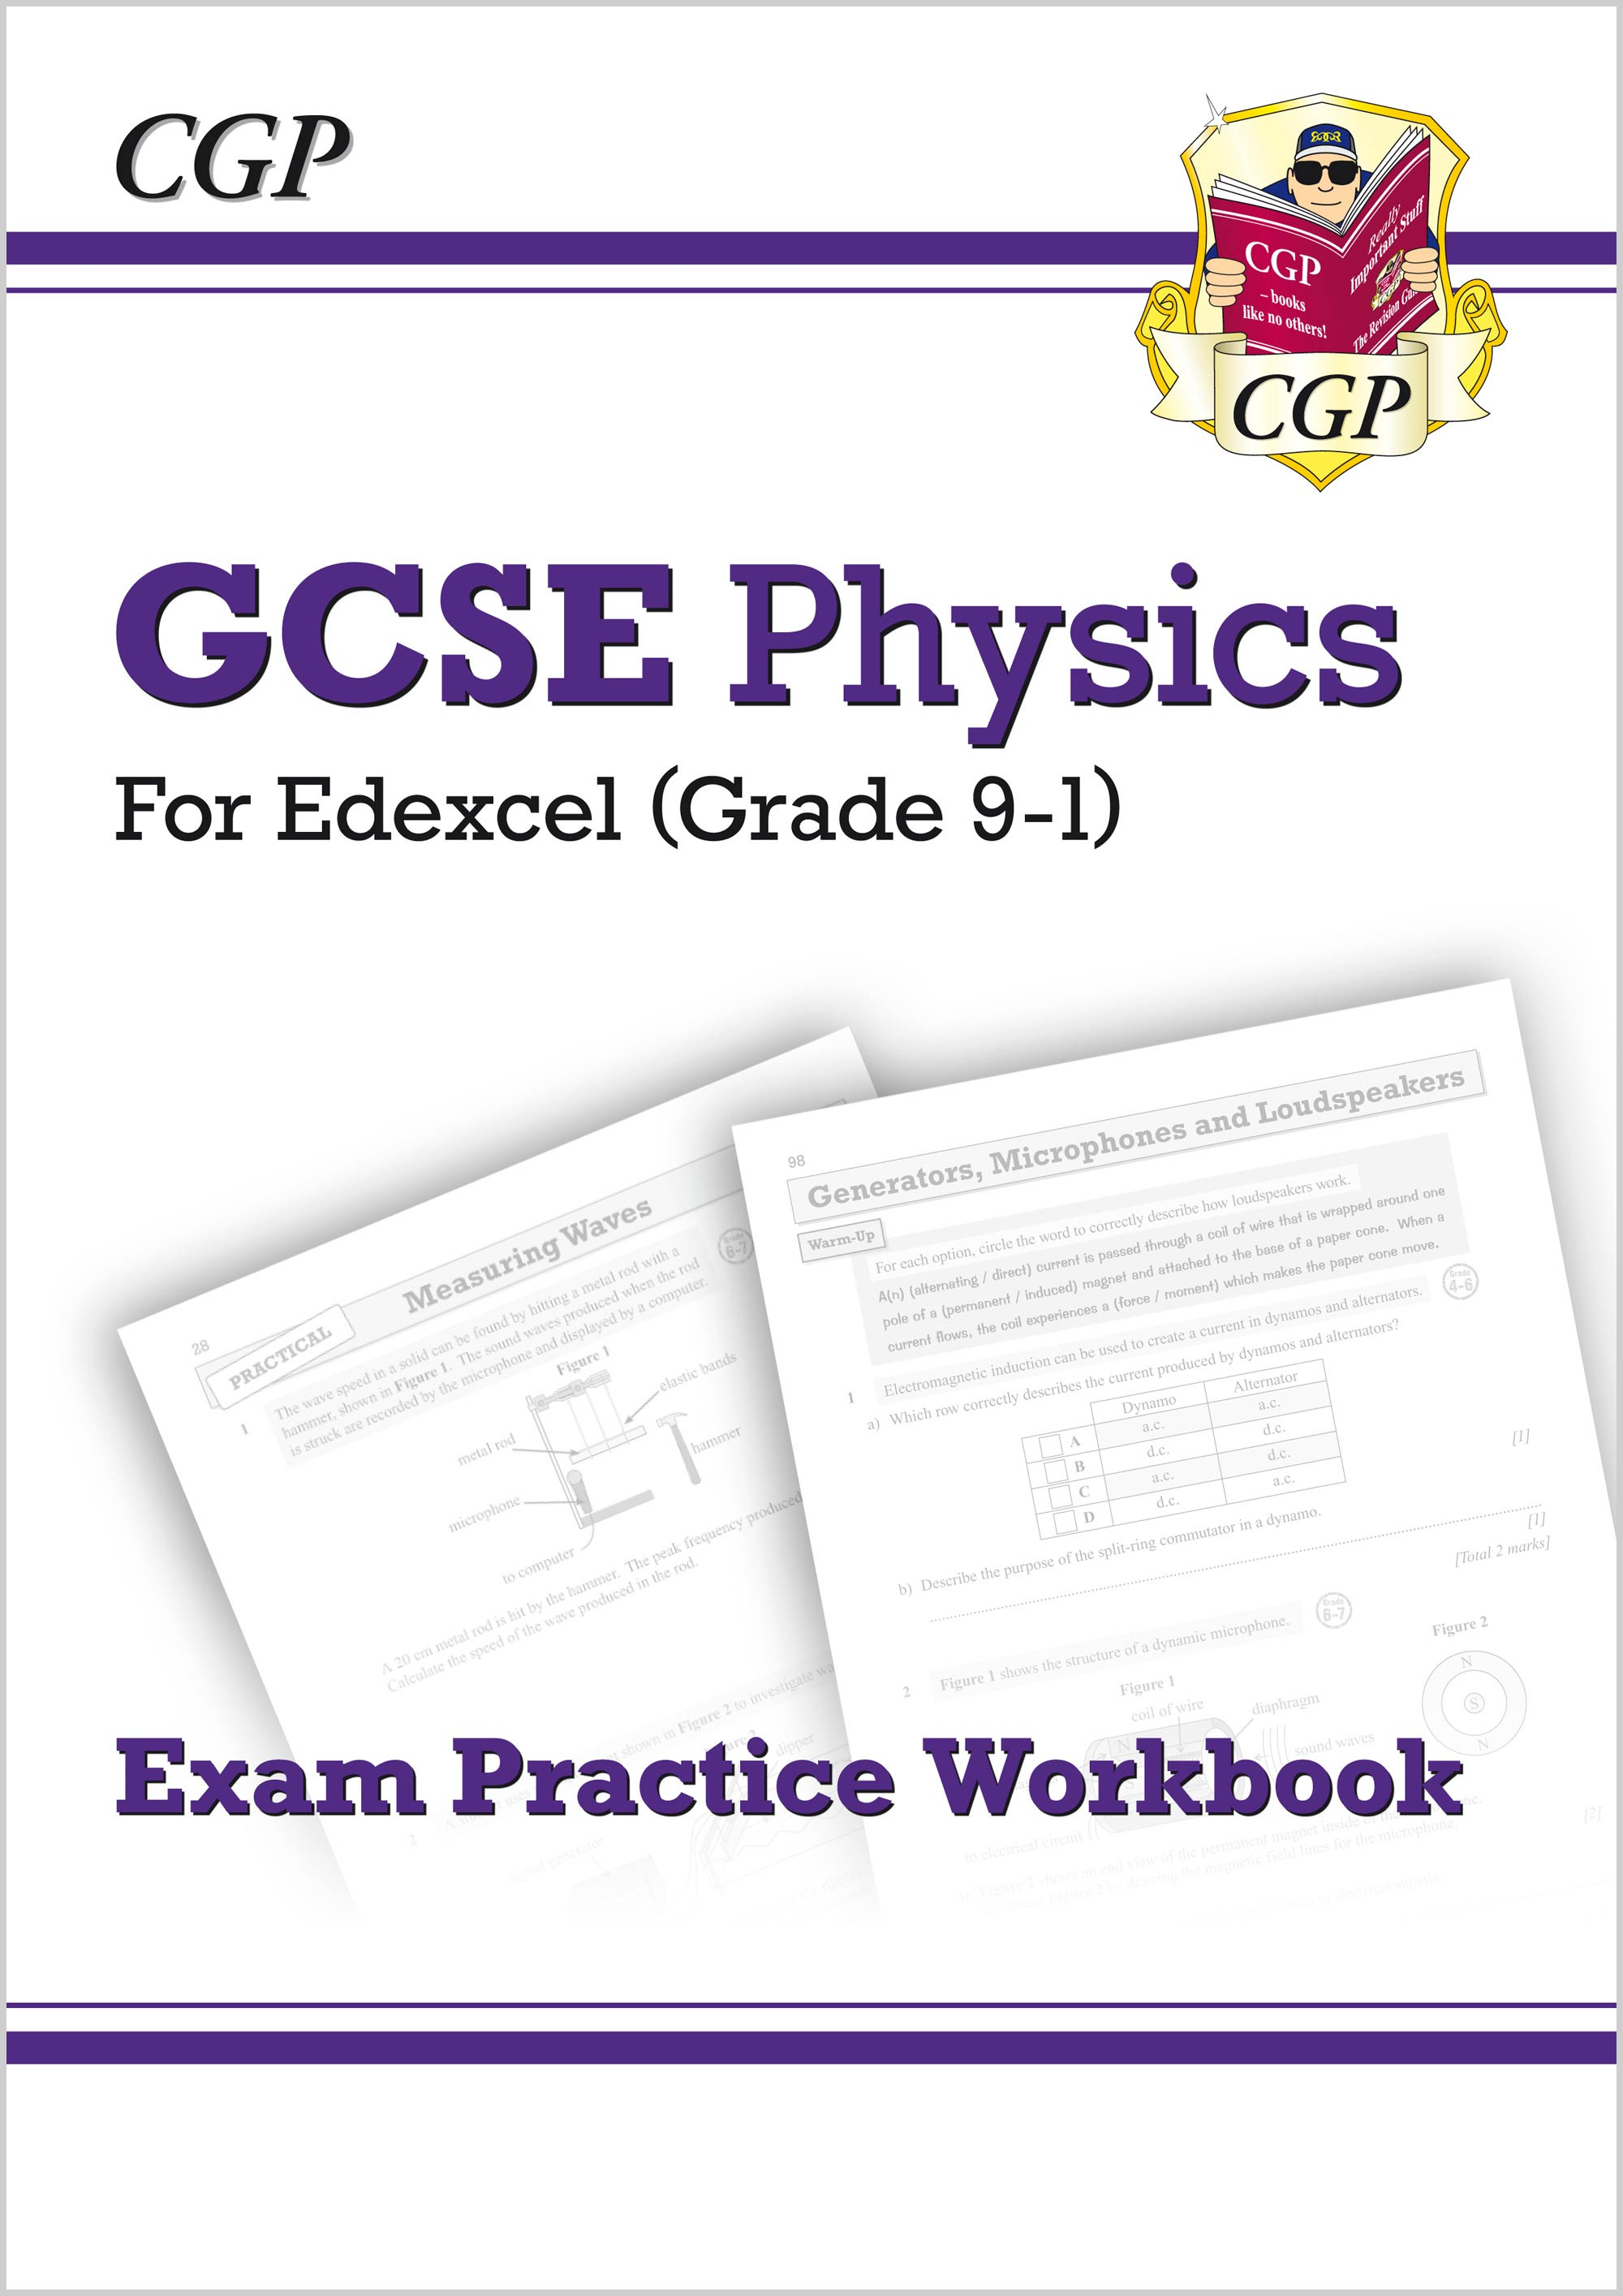 PEQ41 - Grade 9-1 GCSE Physics: Edexcel Exam Practice Workbook